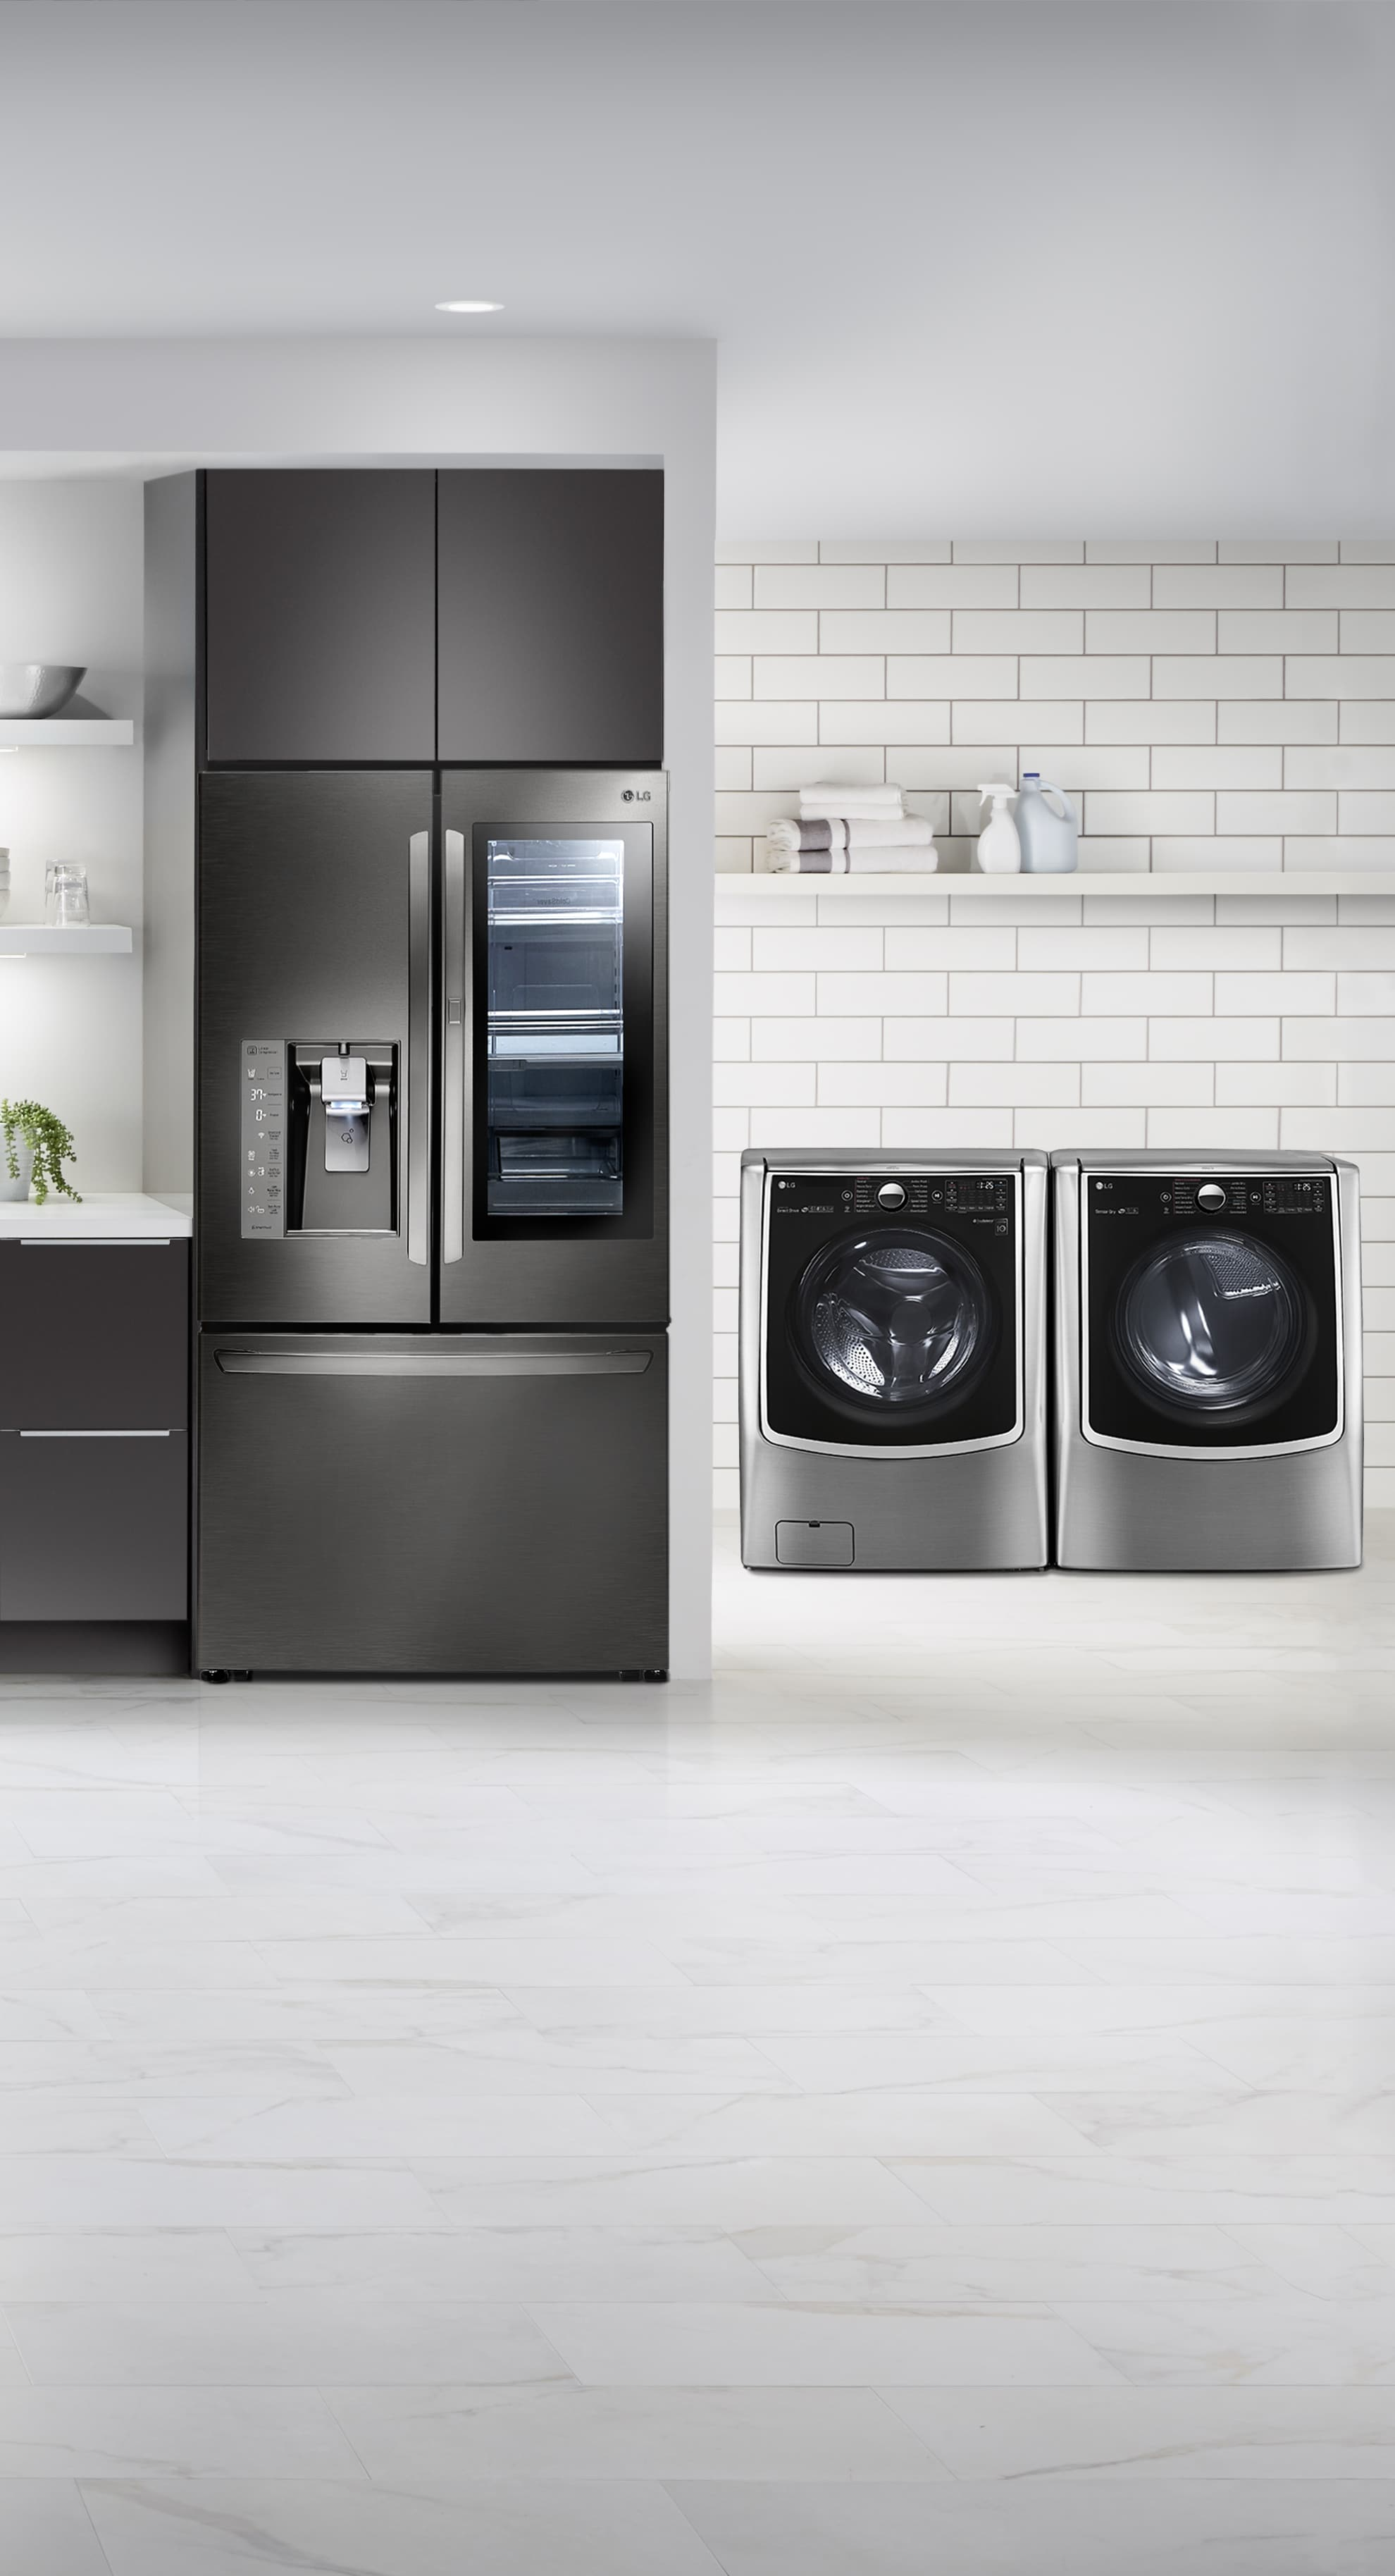 Kitchen Packages Appliances The Lg Appliance Remodeling Sales Event At Best Buy Jays Sweet N